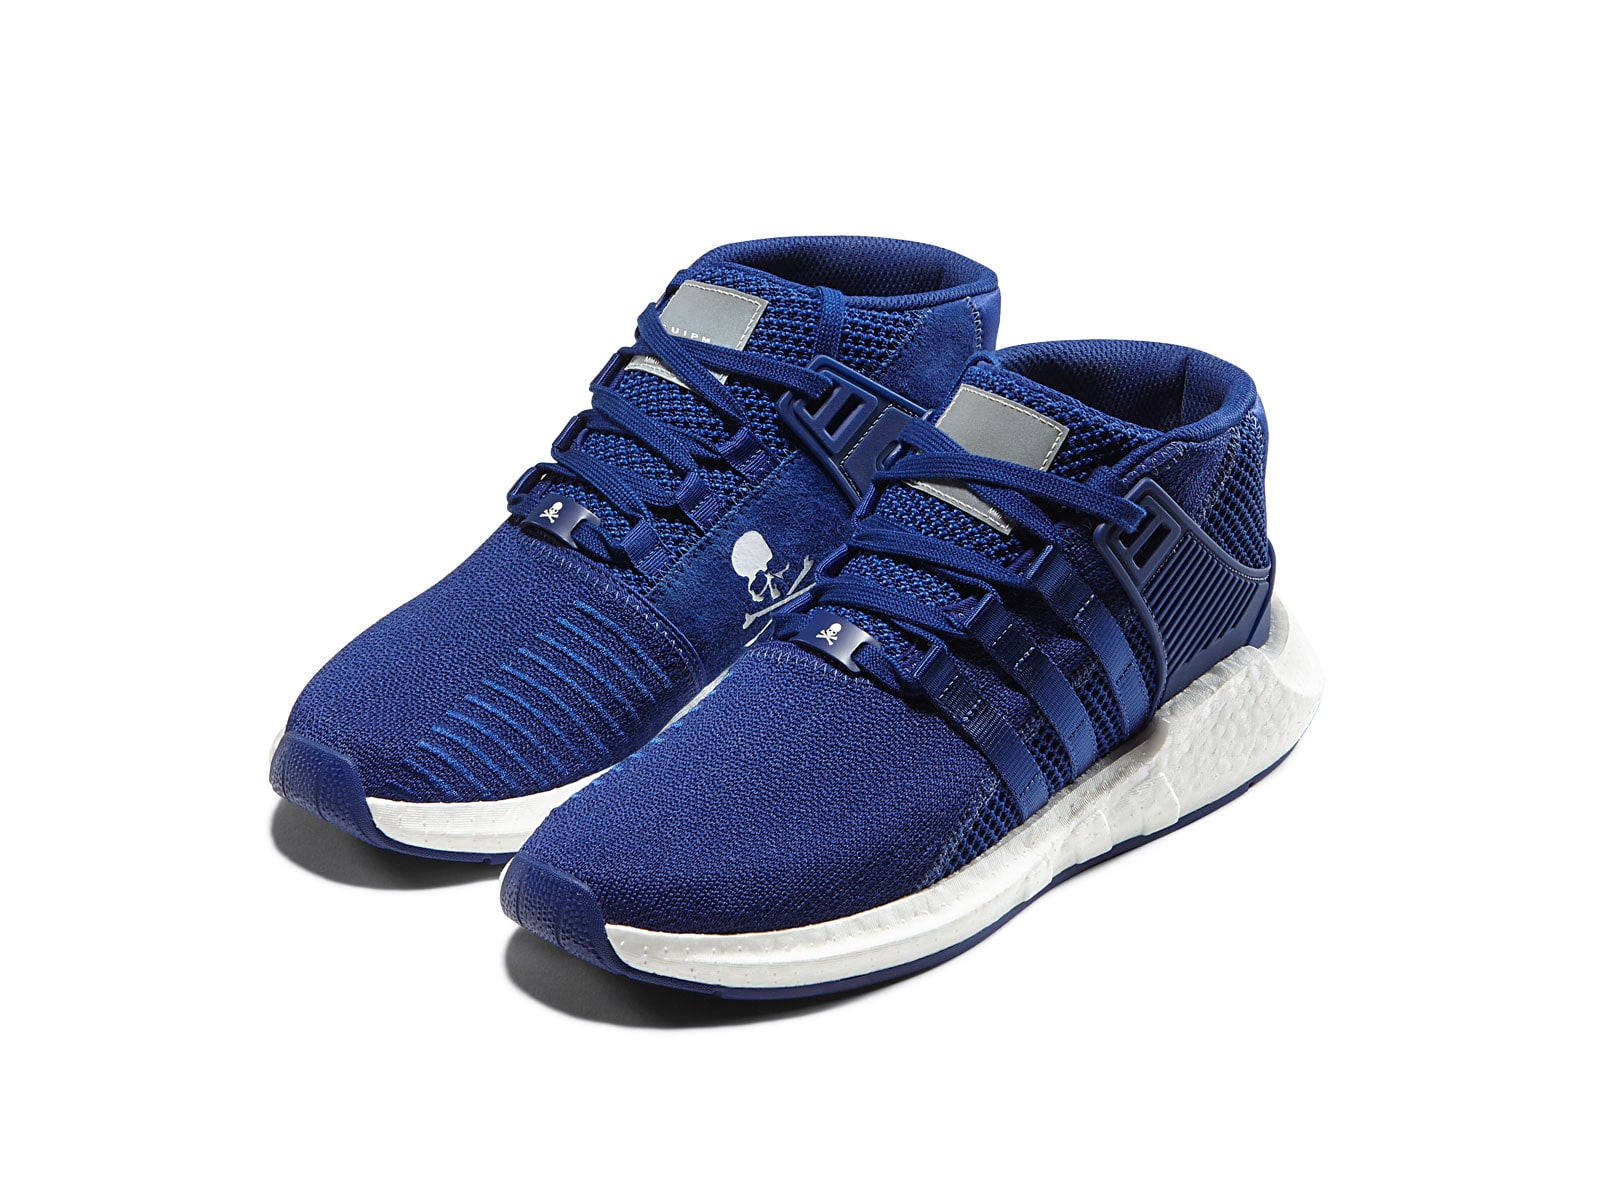 4de3e825d981 MASTERMIND WORLD X ADIDAS EQT SUPPORT 93 17 - MYSTERYINK WHITE ...